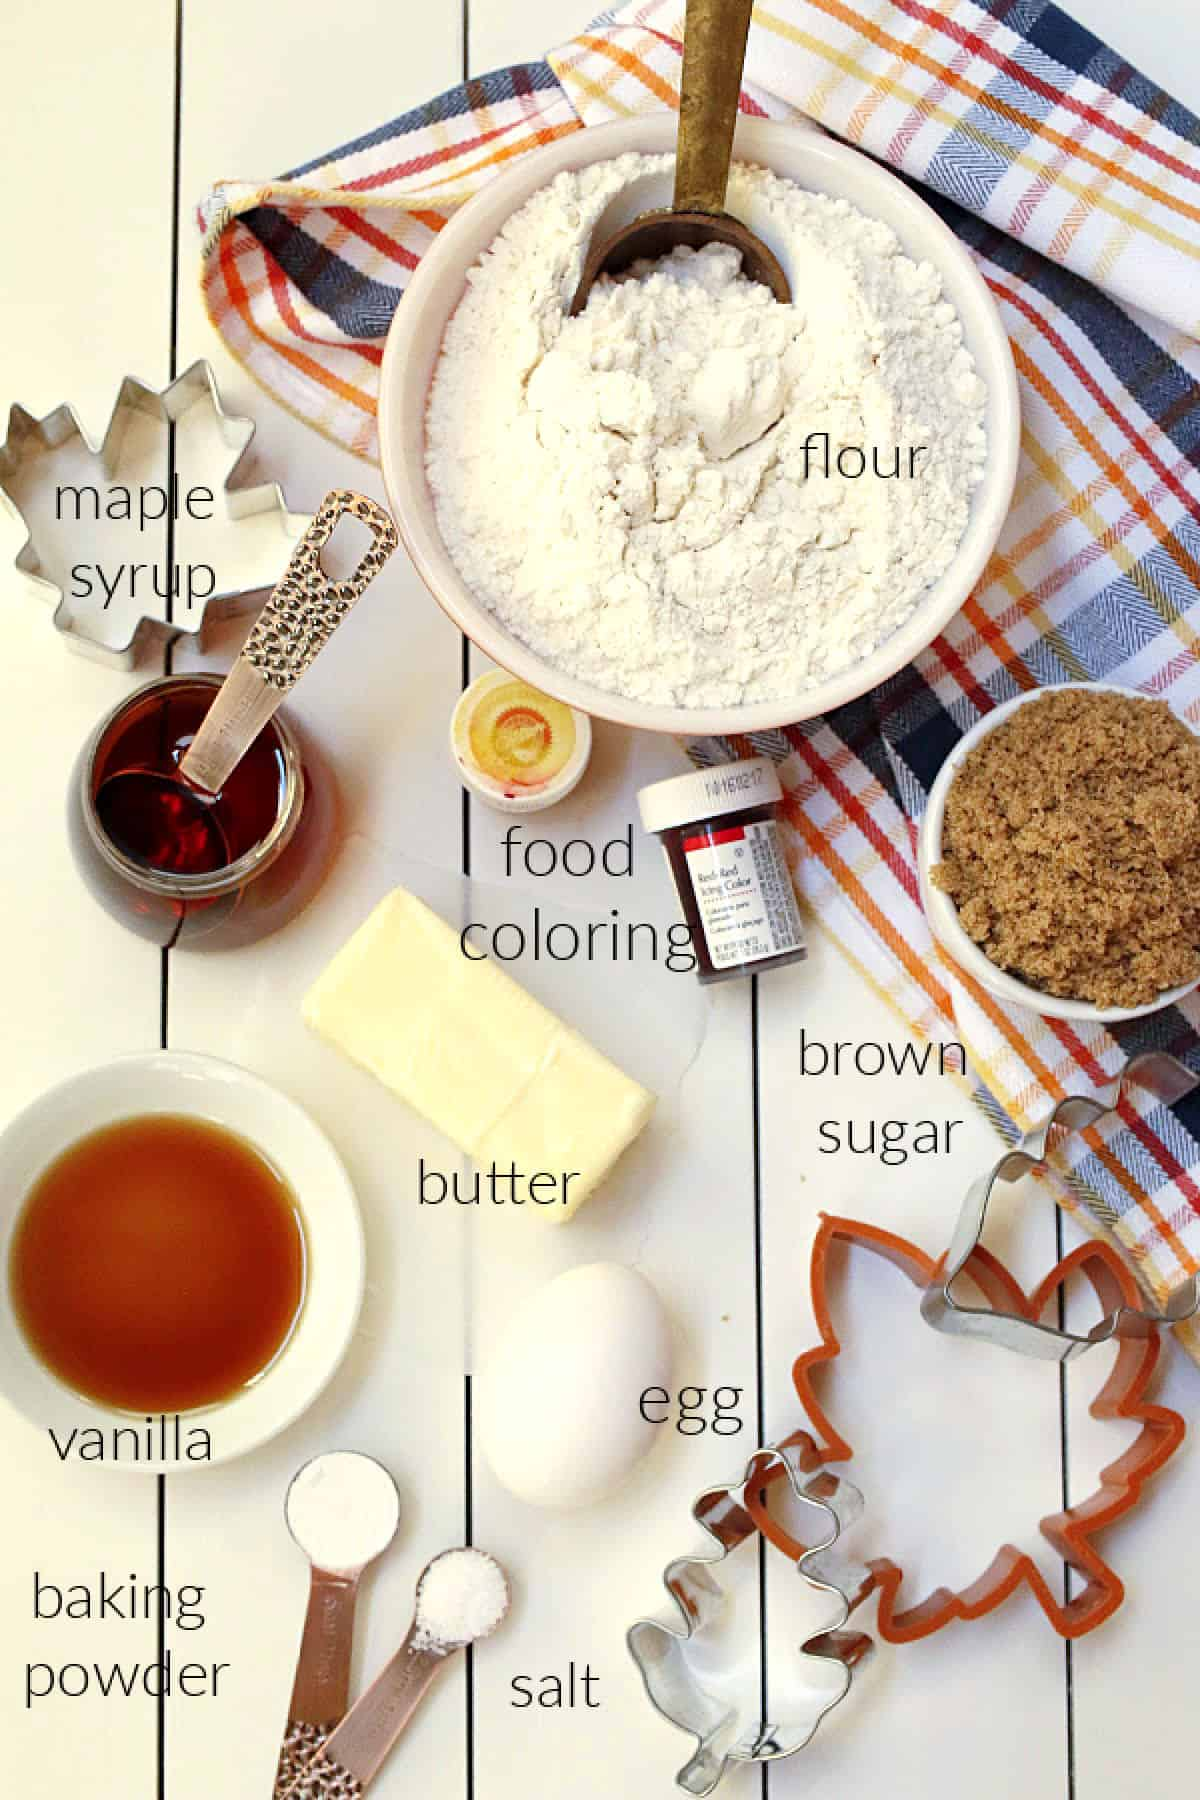 maple cookie ingredients